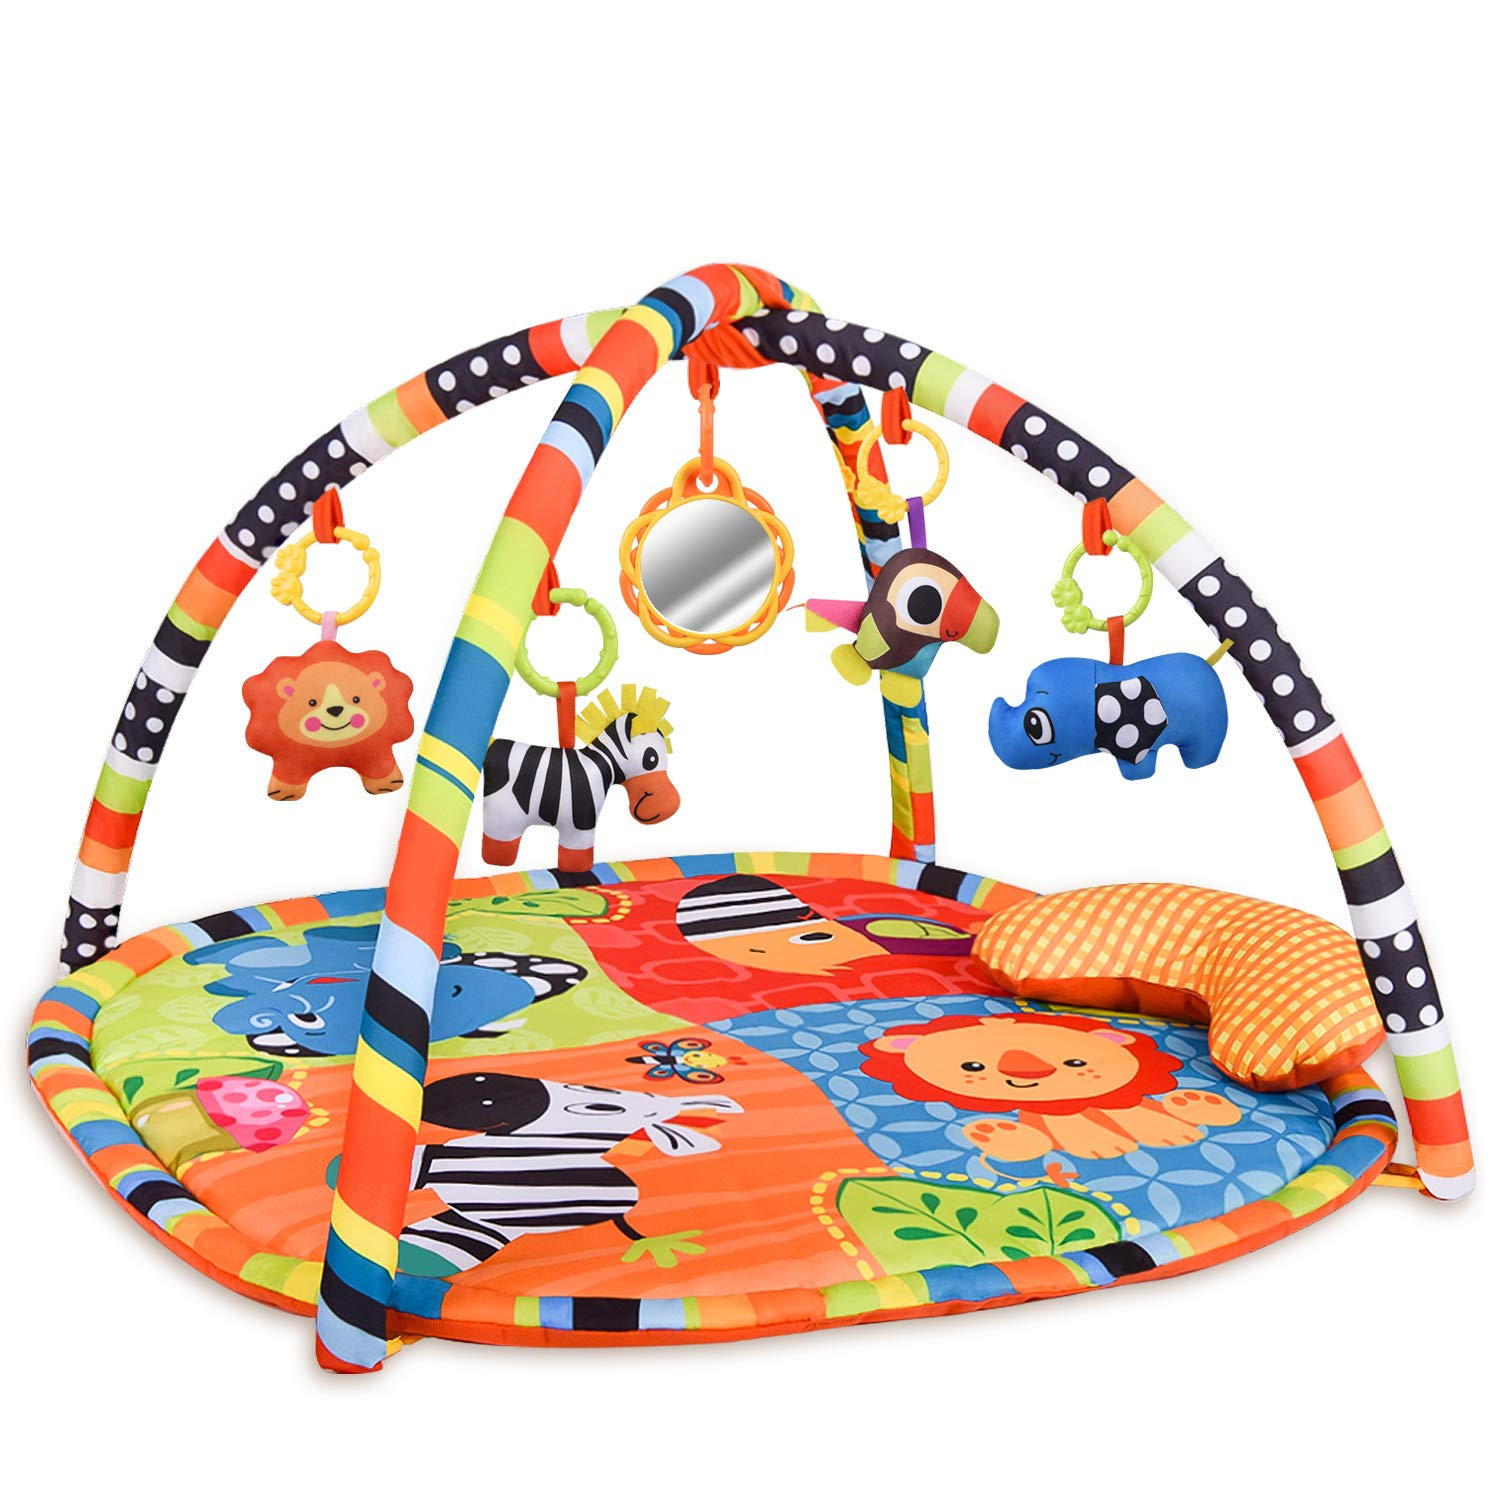 Rainbrace Baby Activity Play Gym Infant Play Mat with Removable Crossed Arches Hanging Plush Toys and Balls for Baby Tummy Time with Ball Pit (30 Ocean Balls Included)